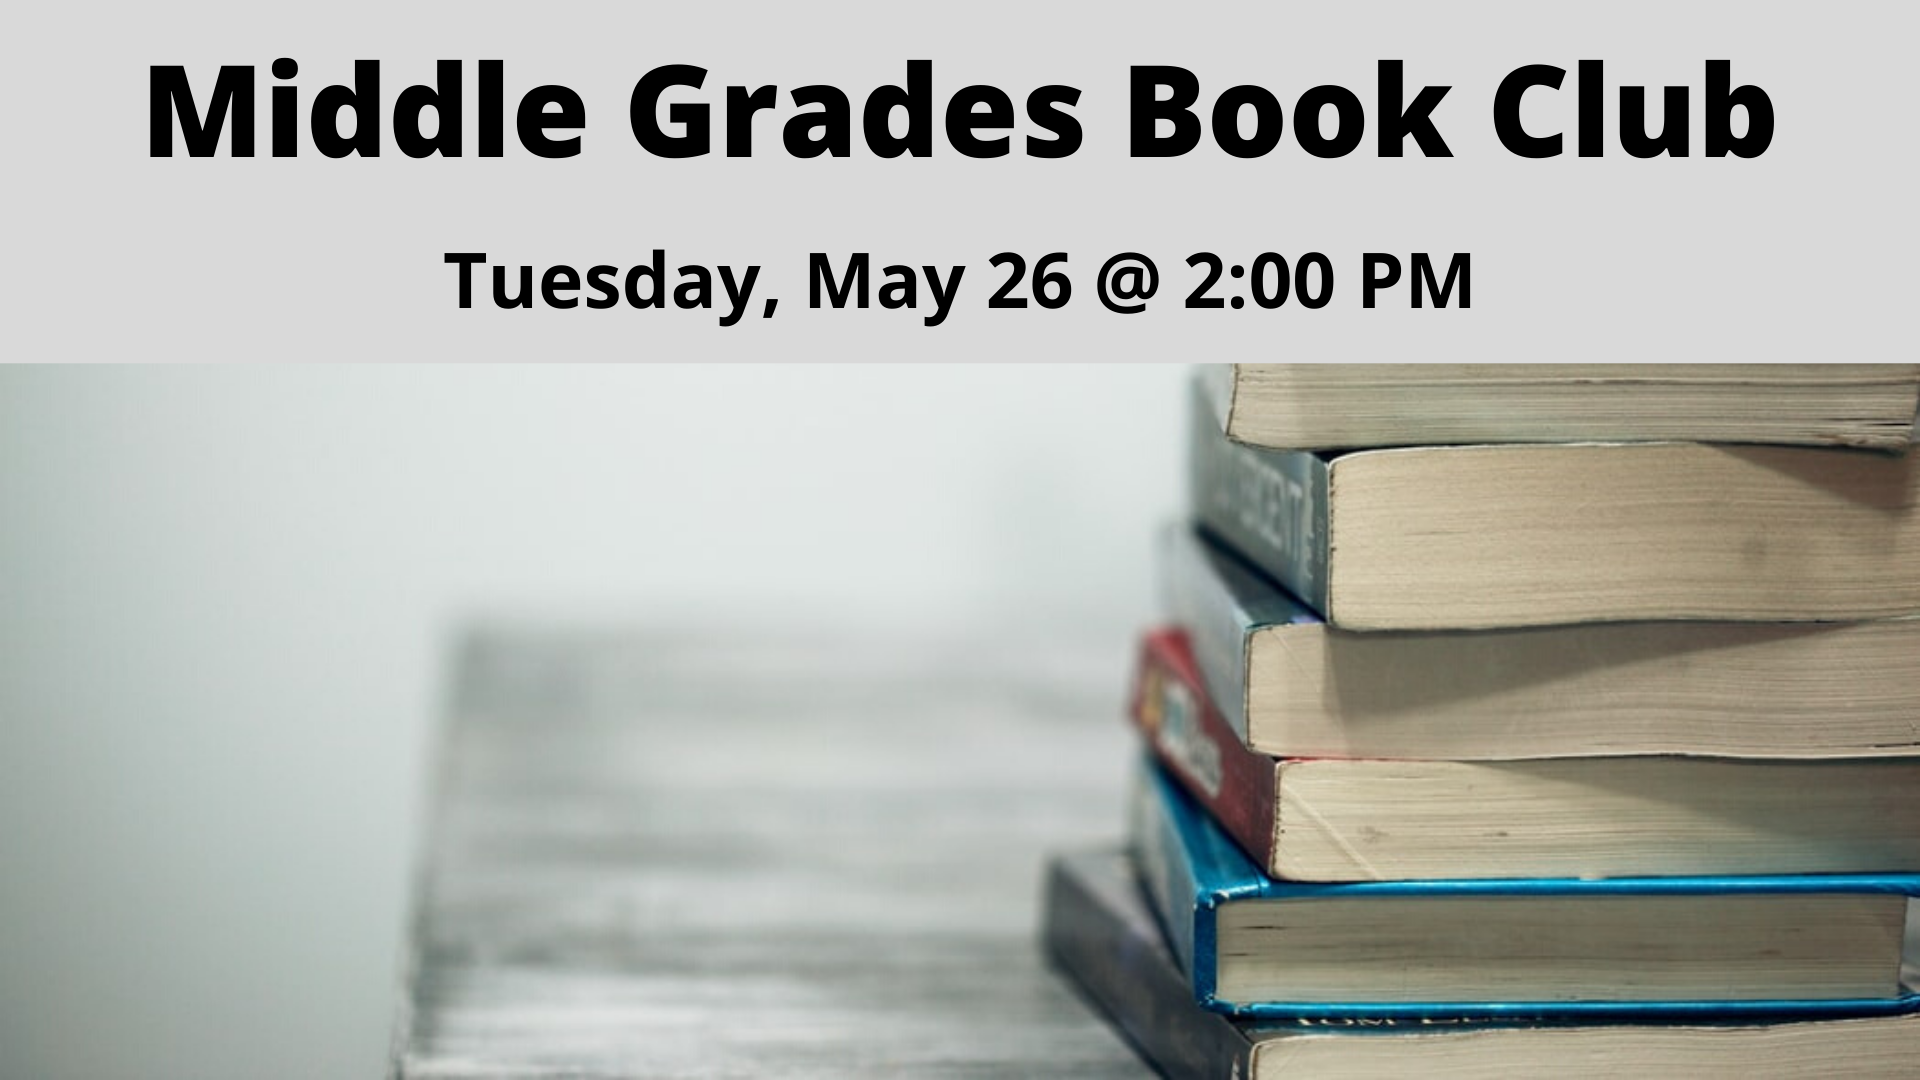 Middle Grades Book Club Image